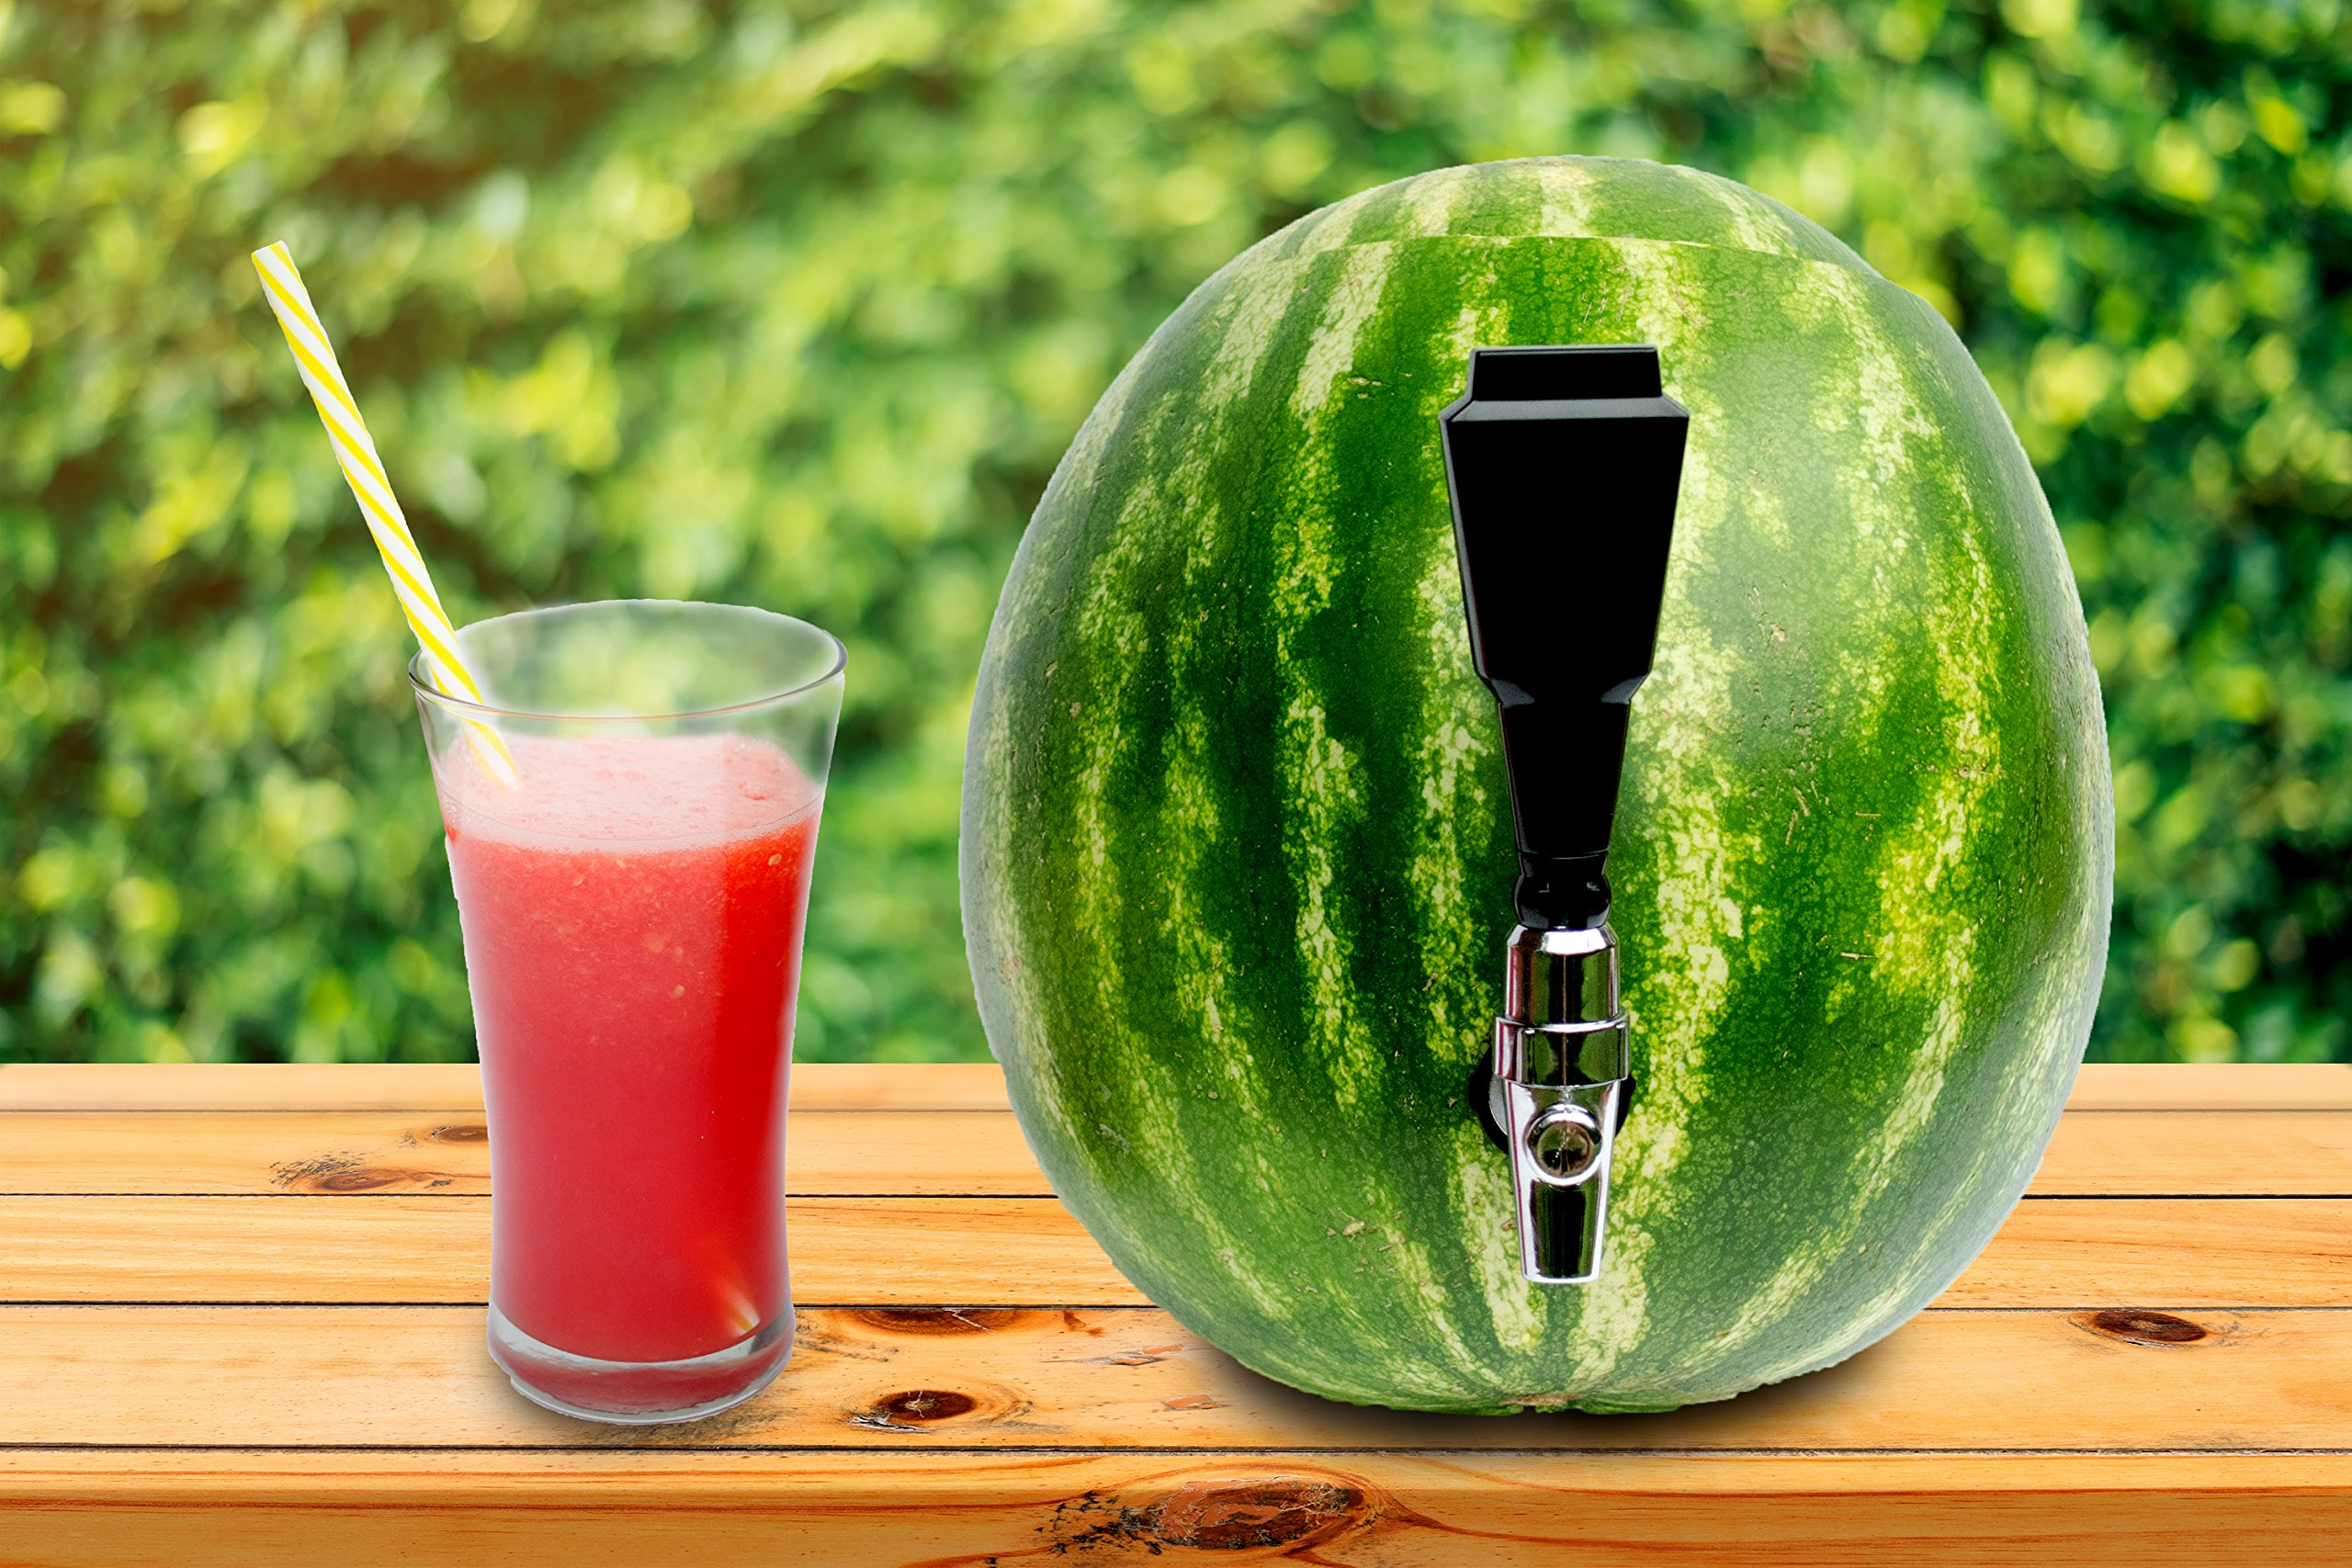 Fruit Keg Tapping & Spout Kit: Stainless Steel Drink Dispenser Set for Watermelons & Other Fruits - Fun Home Bar Gadgets & Cocktail Party Supplies by Still Valley